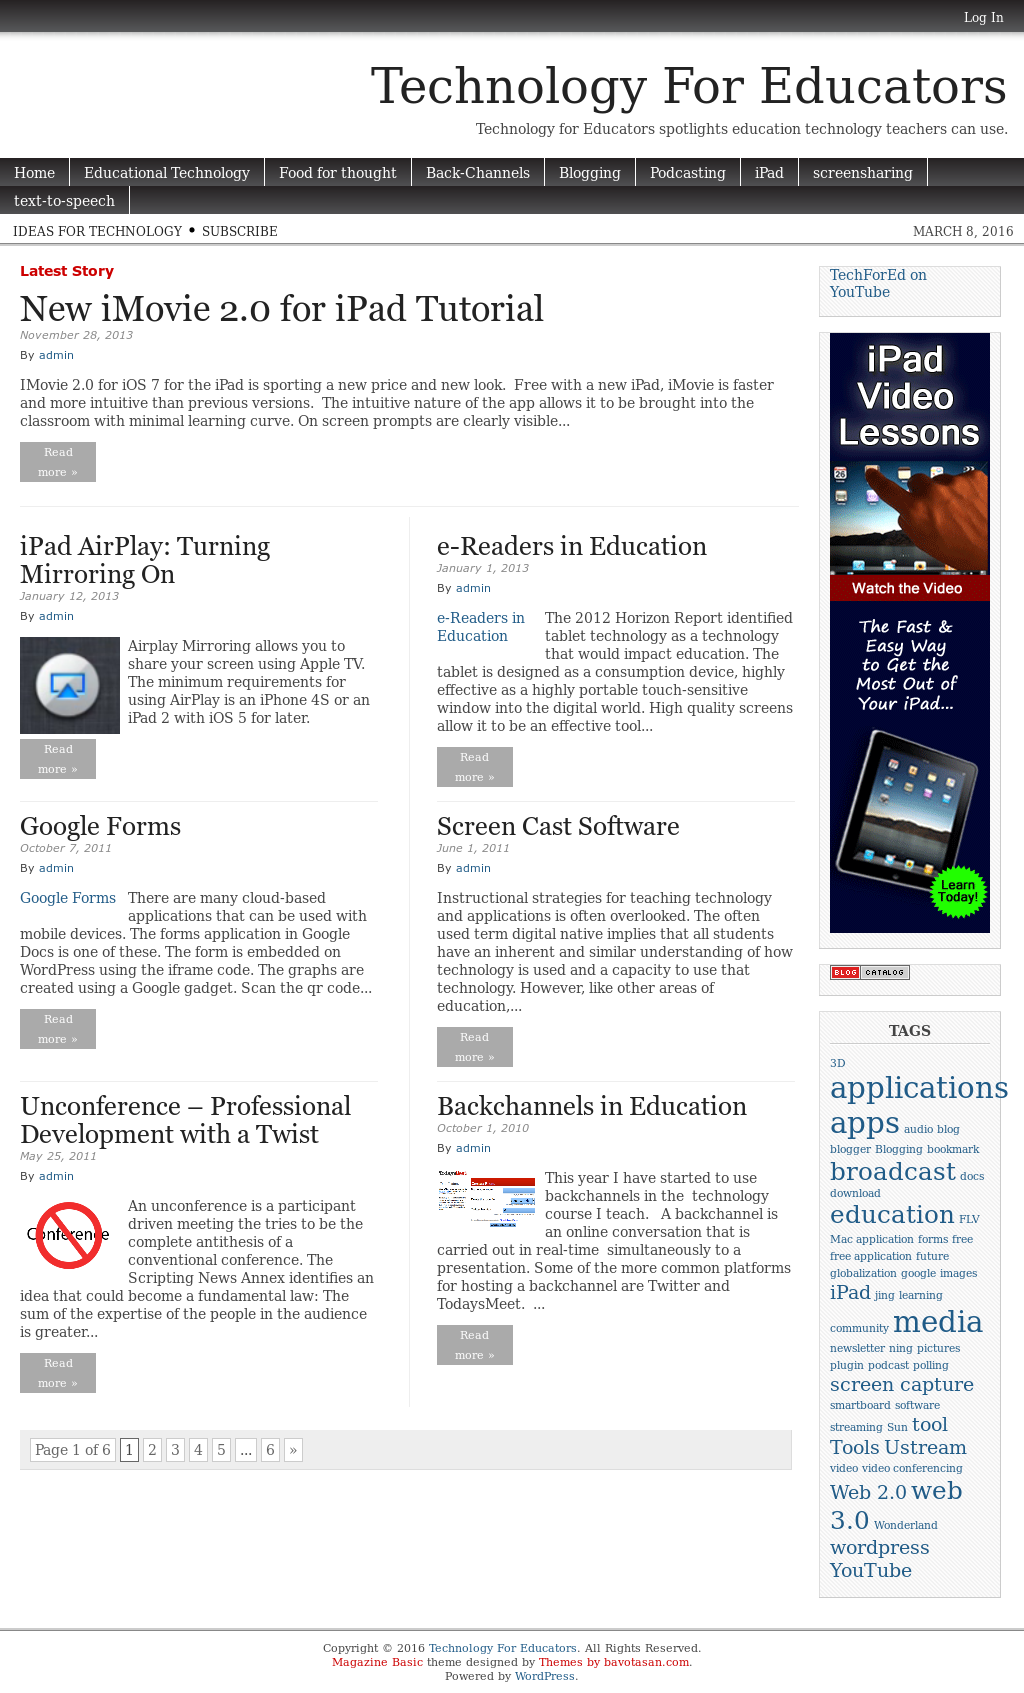 Technology For Educators Competitors, Revenue and Employees - Owler